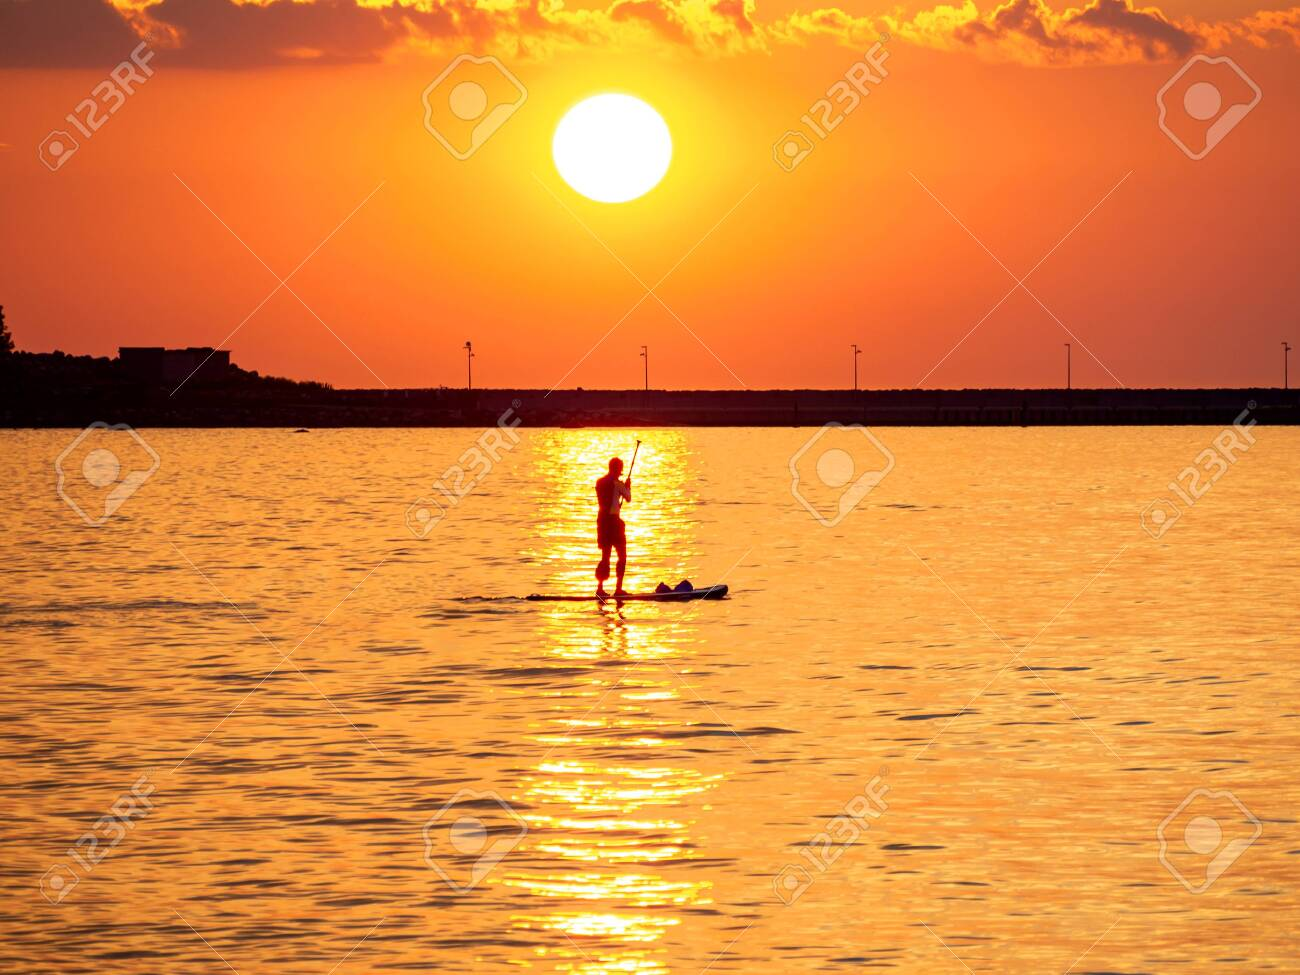 Sunset Silhouette Of Summer Surfing Man Standing On Paddle Board